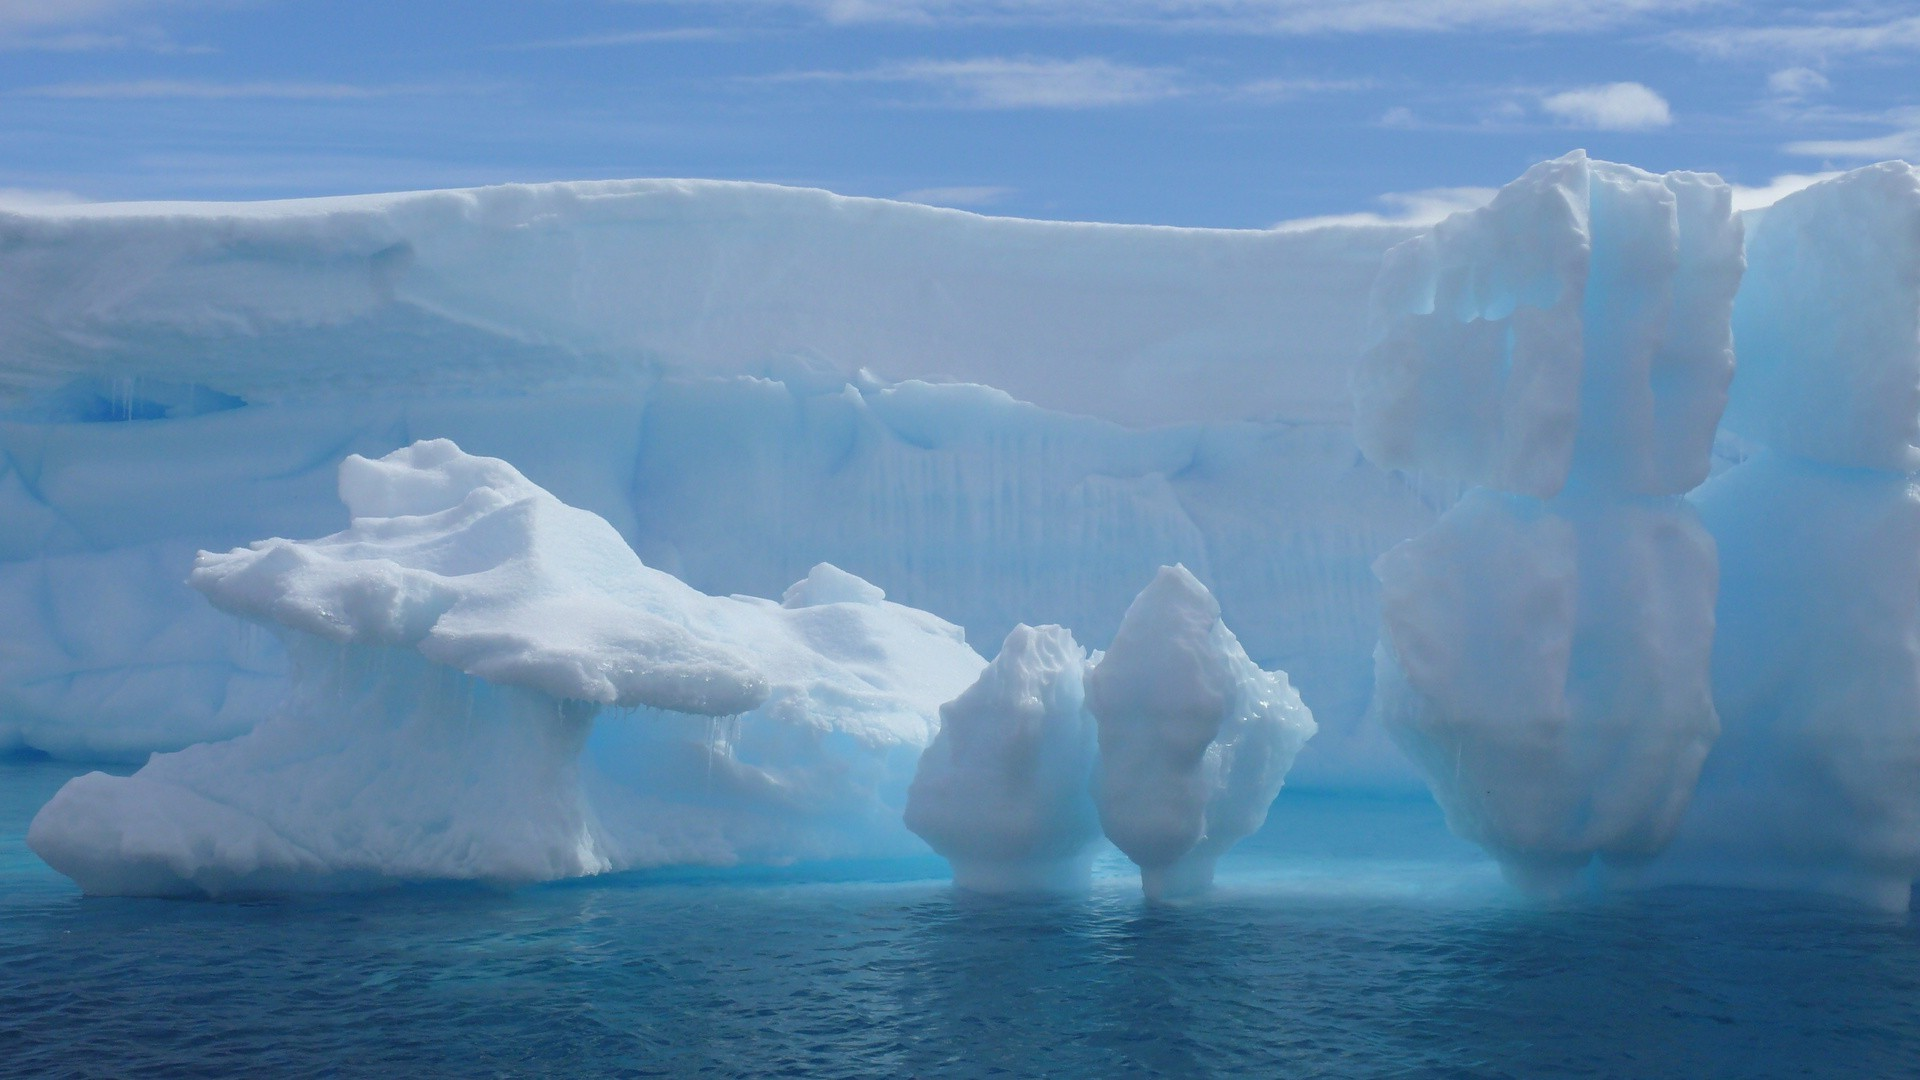 ice iceberg melting frosty swimming glacier snow water cold climate change winter greenland global warming nature outdoors frozen antarctic sea travel